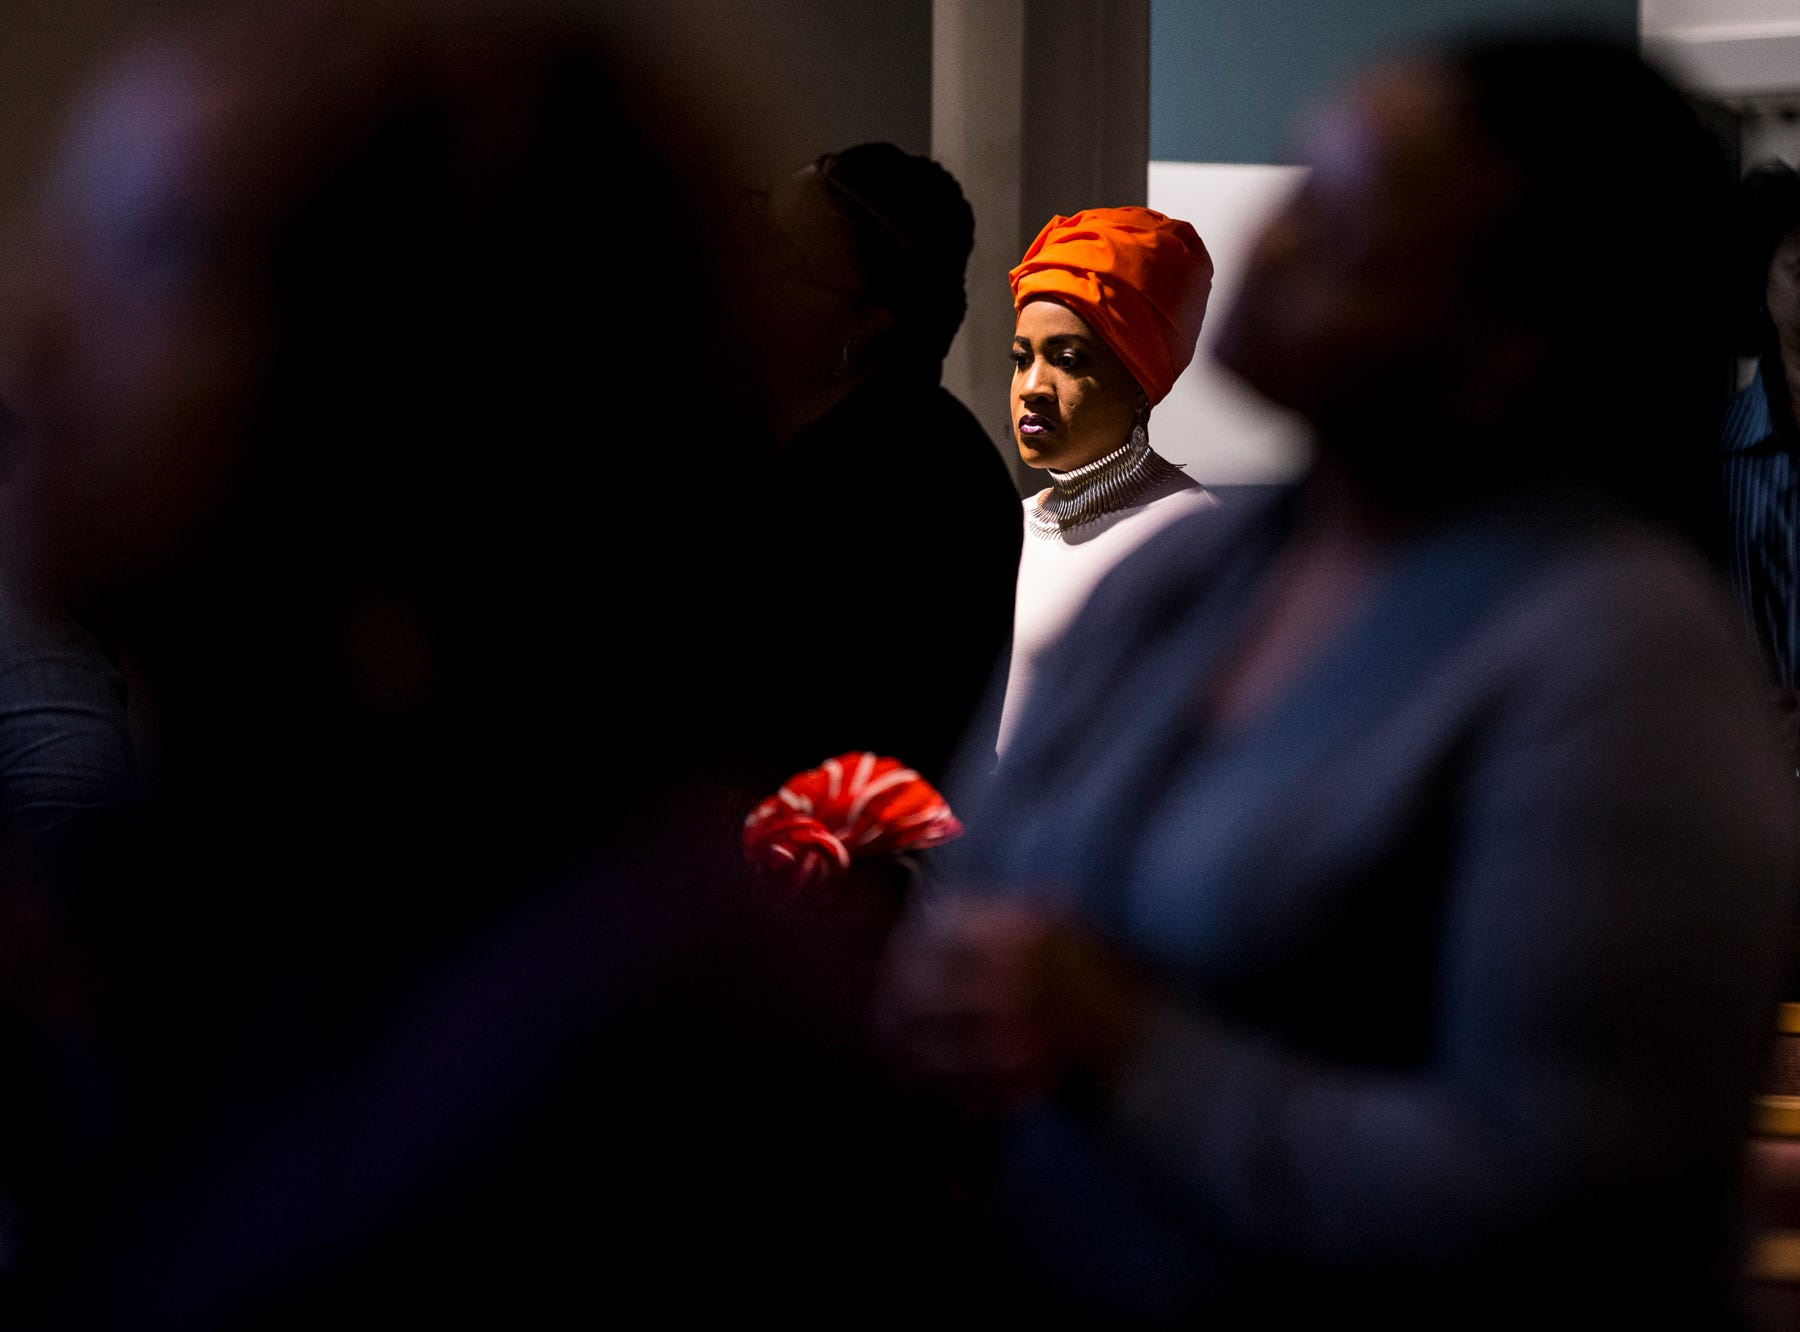 A congregant listens during the 7:30 a.m. service on Feb. 24, 2019, at Pilgrim Rest Baptist Church in Phoenix. Pastor Terry Mackey was appointed to replace the late Bishop Alexis Thomas.